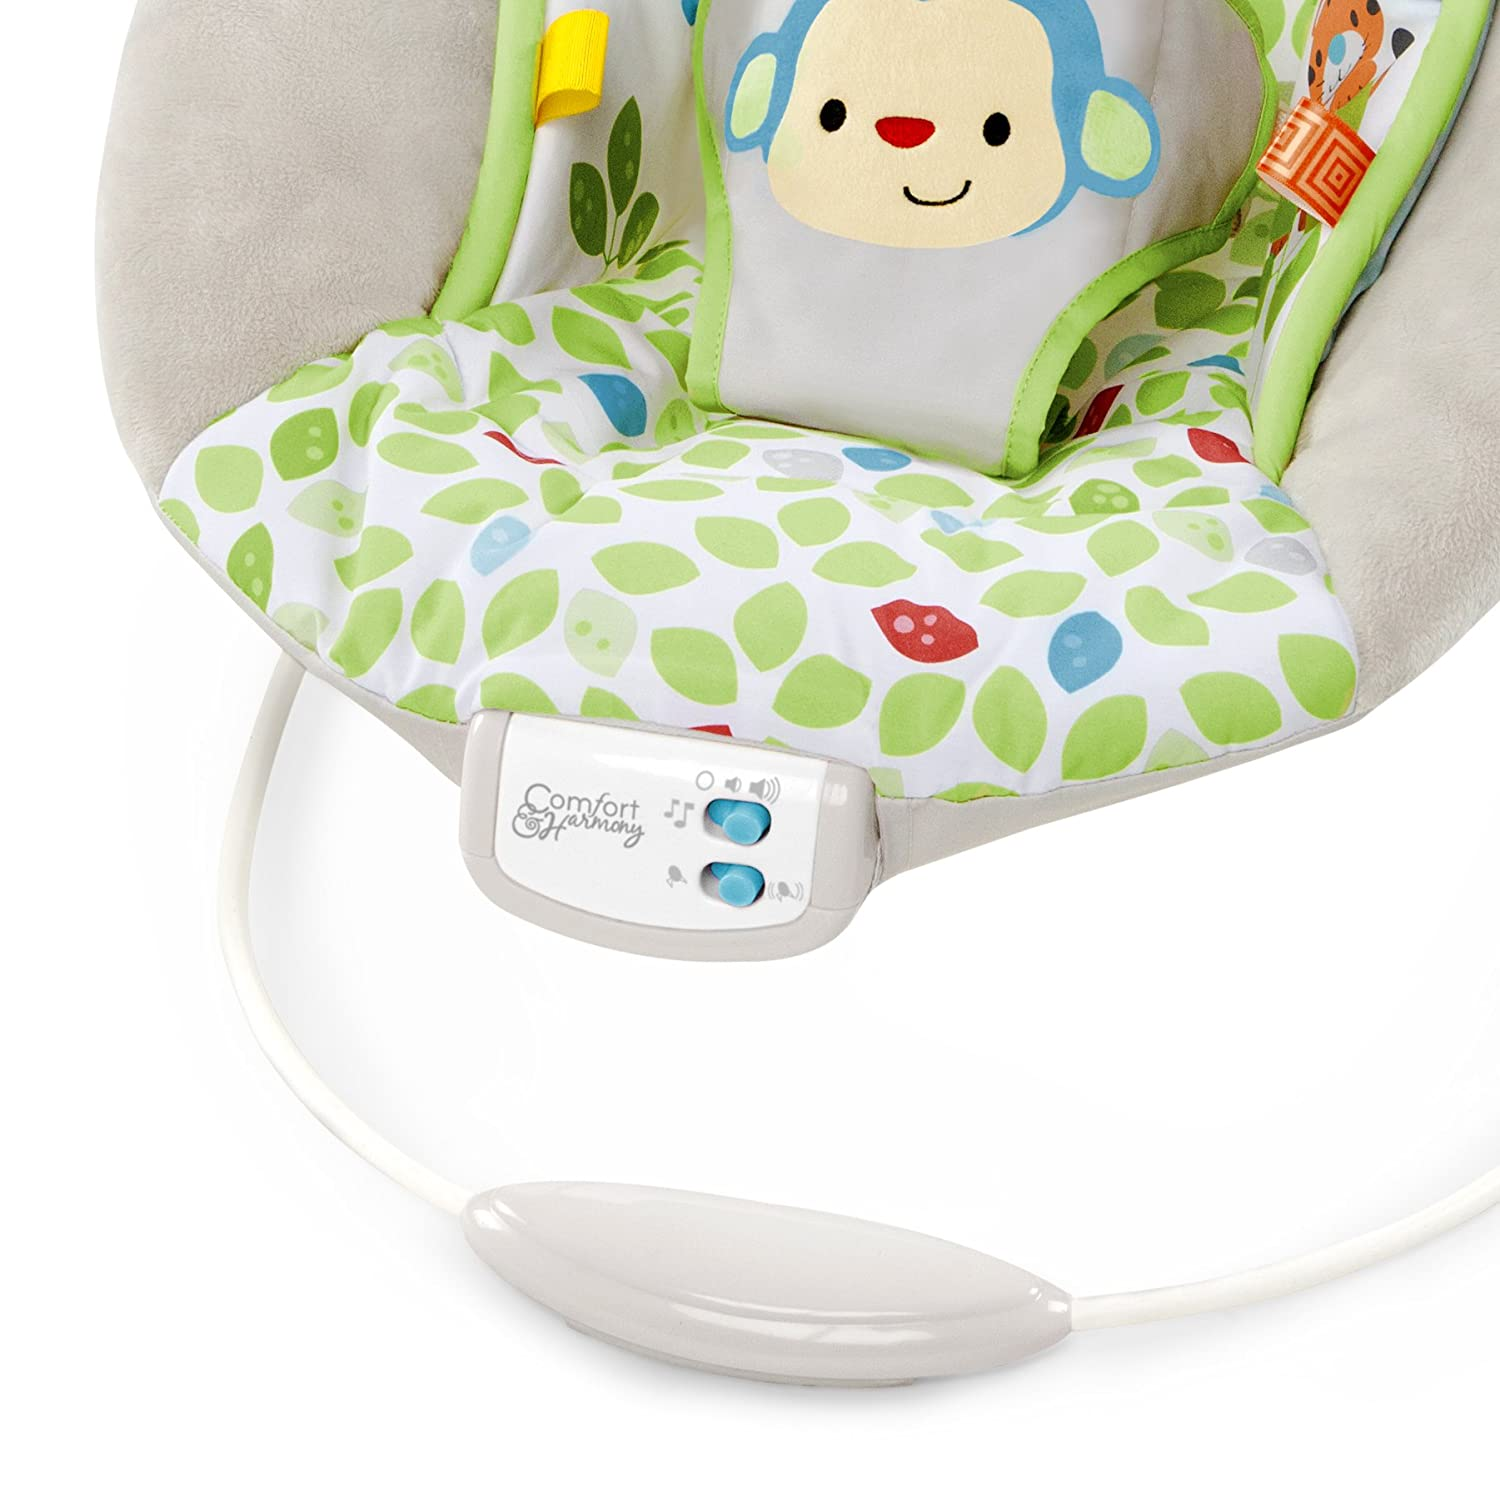 baby chair that vibrates dining covers for wedding bouncer cradling plush seat vibrating merry